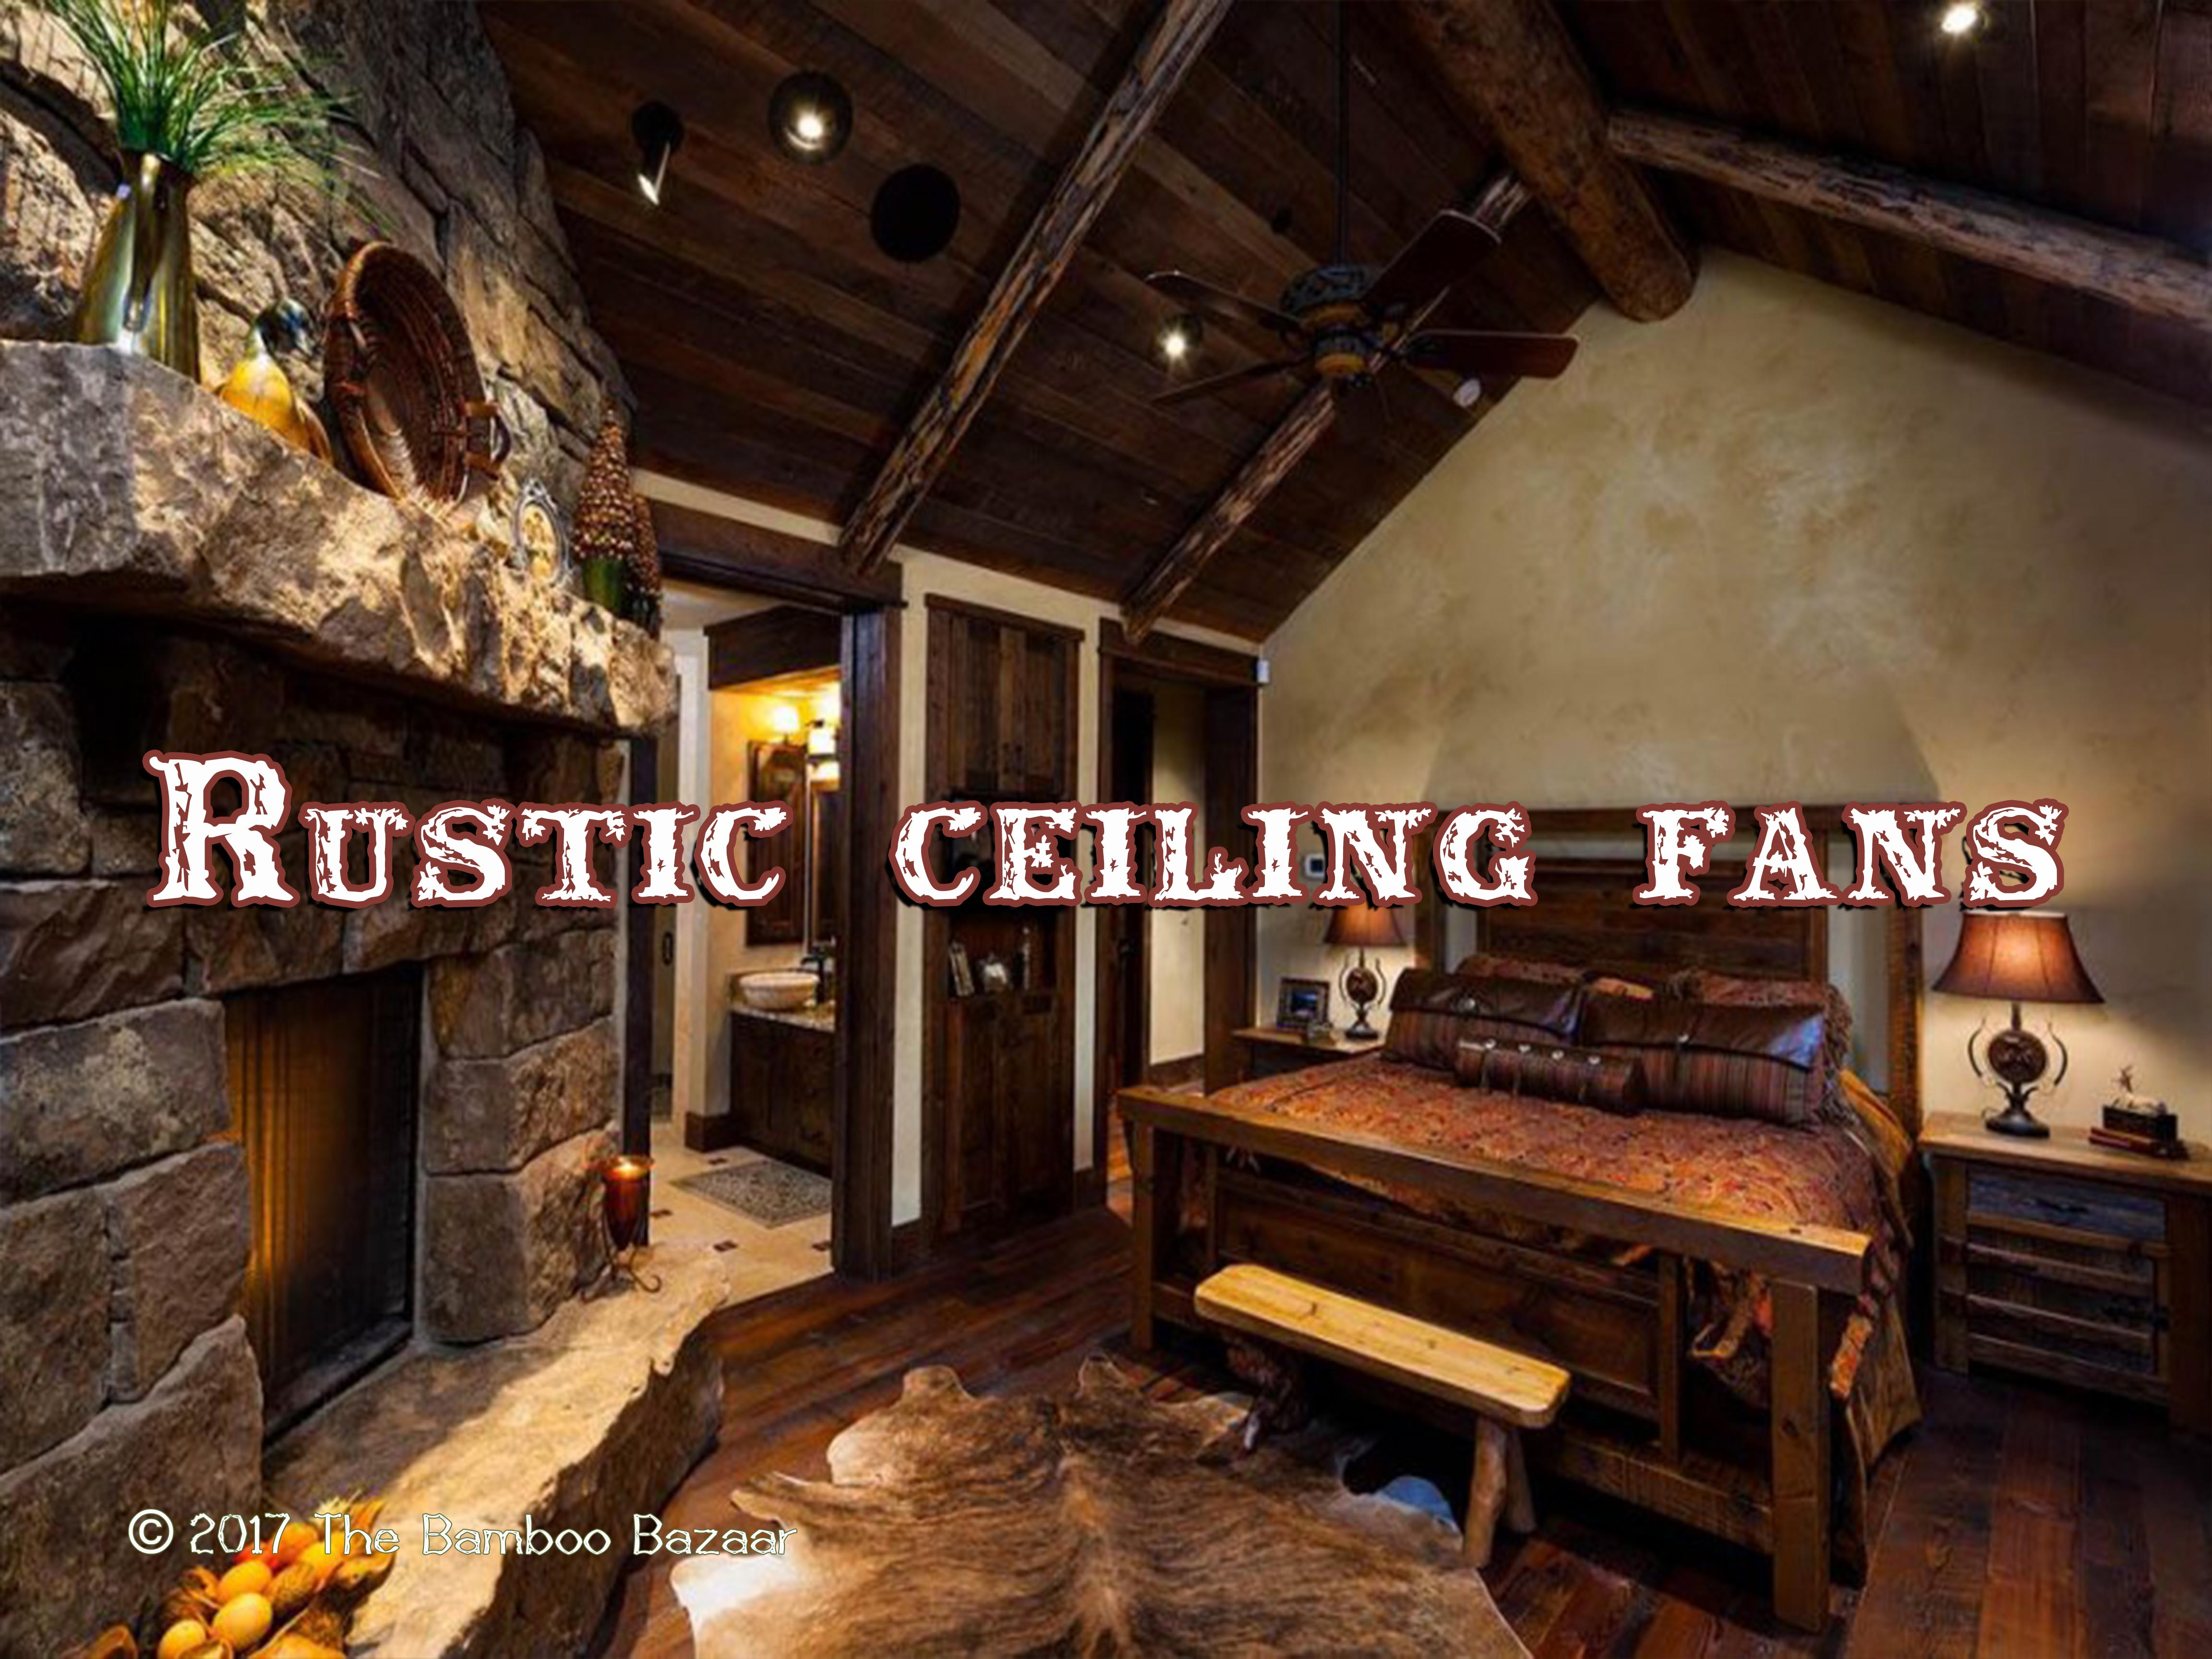 Rustic Ceiling Fans With Lights A Guide To The Best Of 2017